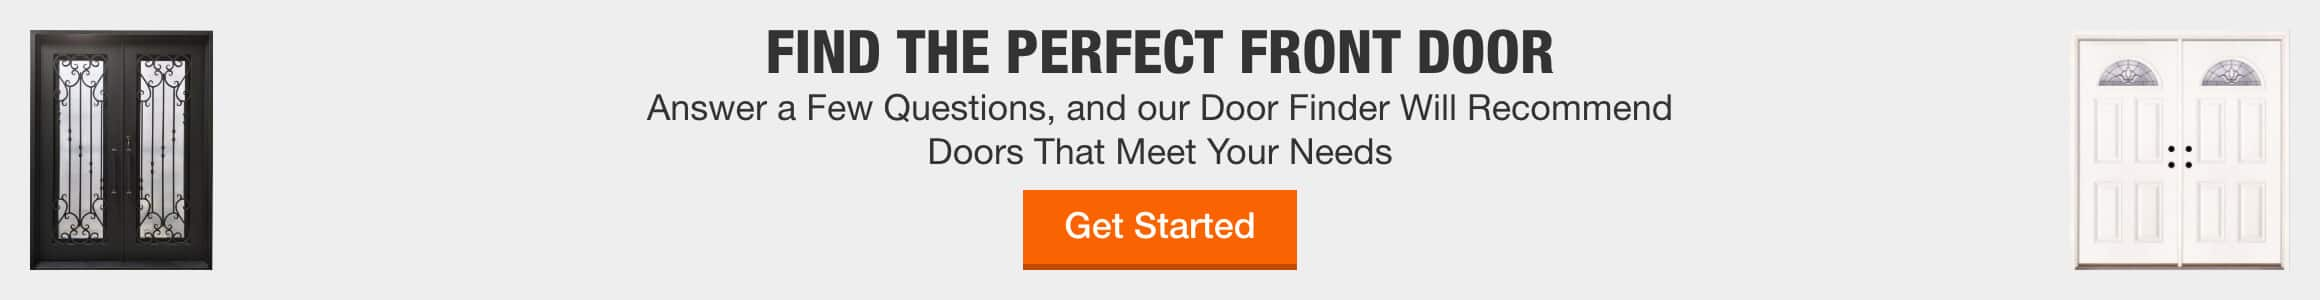 FIND THE PERFECT FRONT DOOR - Answer a Few Questions and our Door Finder Will Recommend Doors That Meet Your Needs